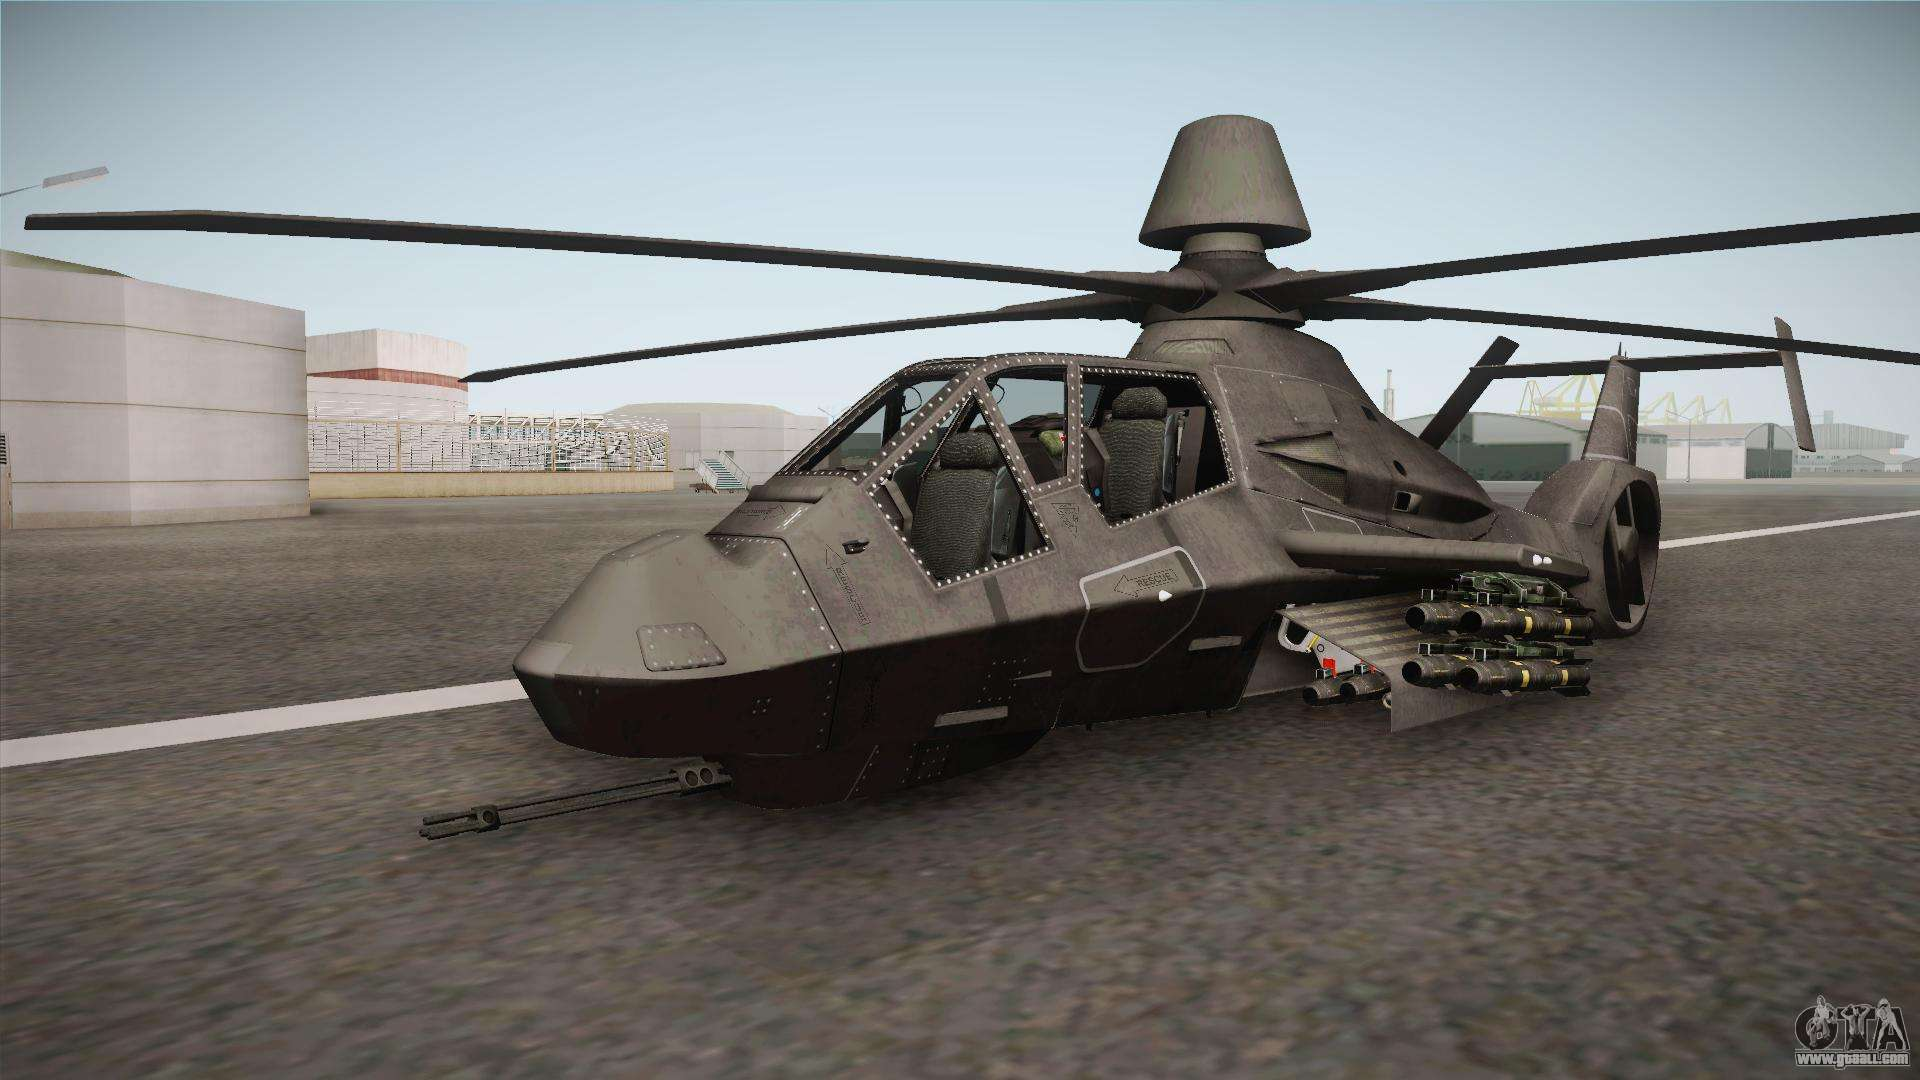 gta v helicopter with 89500 Rah 66  Anche With Pods Retracted on File Cargobob GTAV RearDoorOpen further Sky Hd Wallpaper likewise GTA 5 Alle Monster Stunts 8706698 furthermore 66946 Stealth Ufo Beta as well GTA 5 Online Executives Criminals Update DLC Super Yacht Details Revealed.